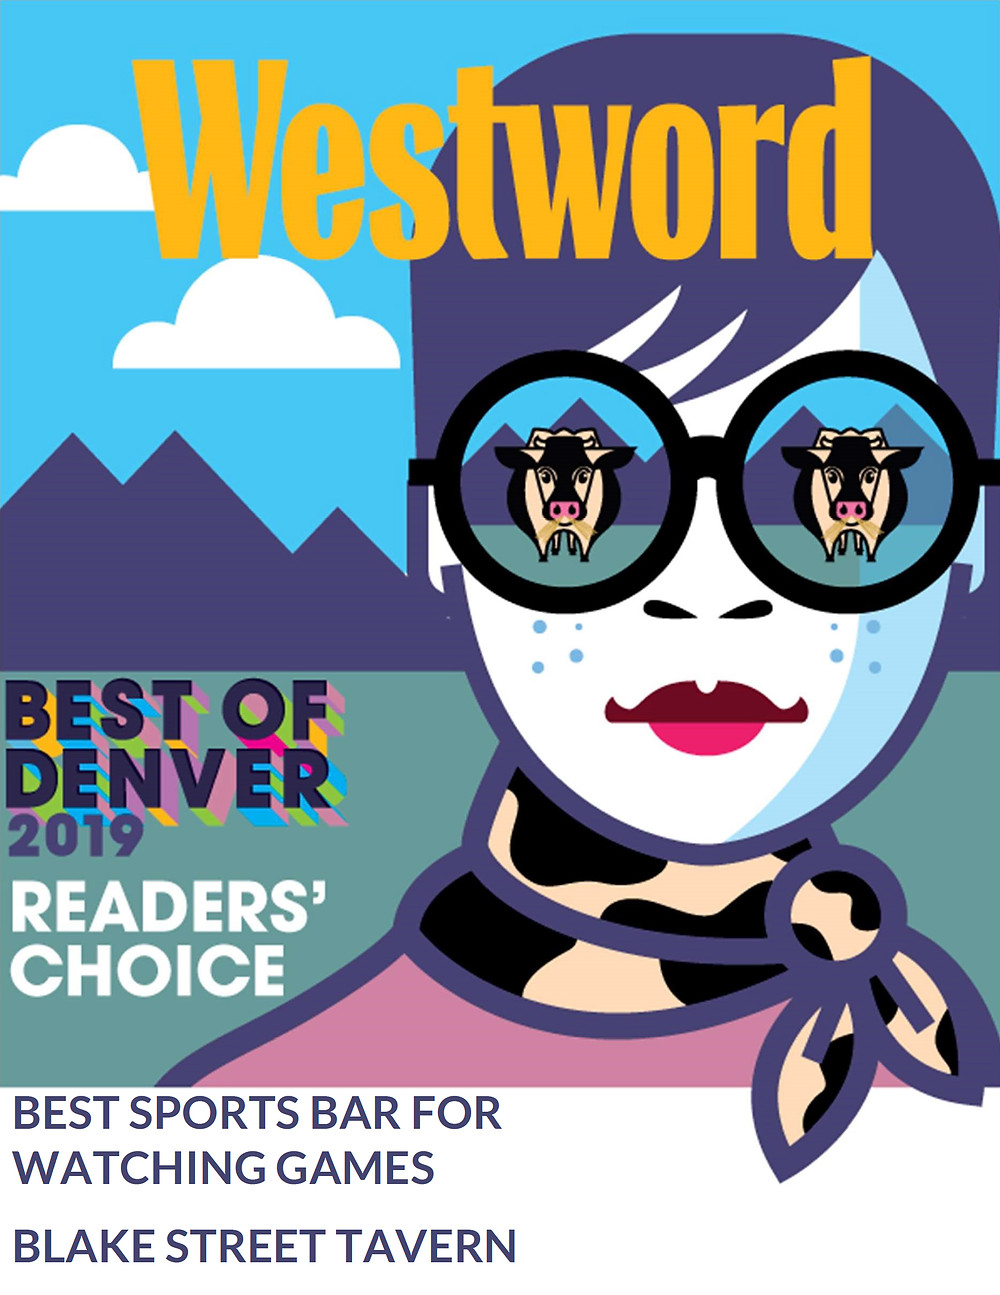 Denvers Best Sports Bar for Watching Games - 2019 Readers' Choice, Westword